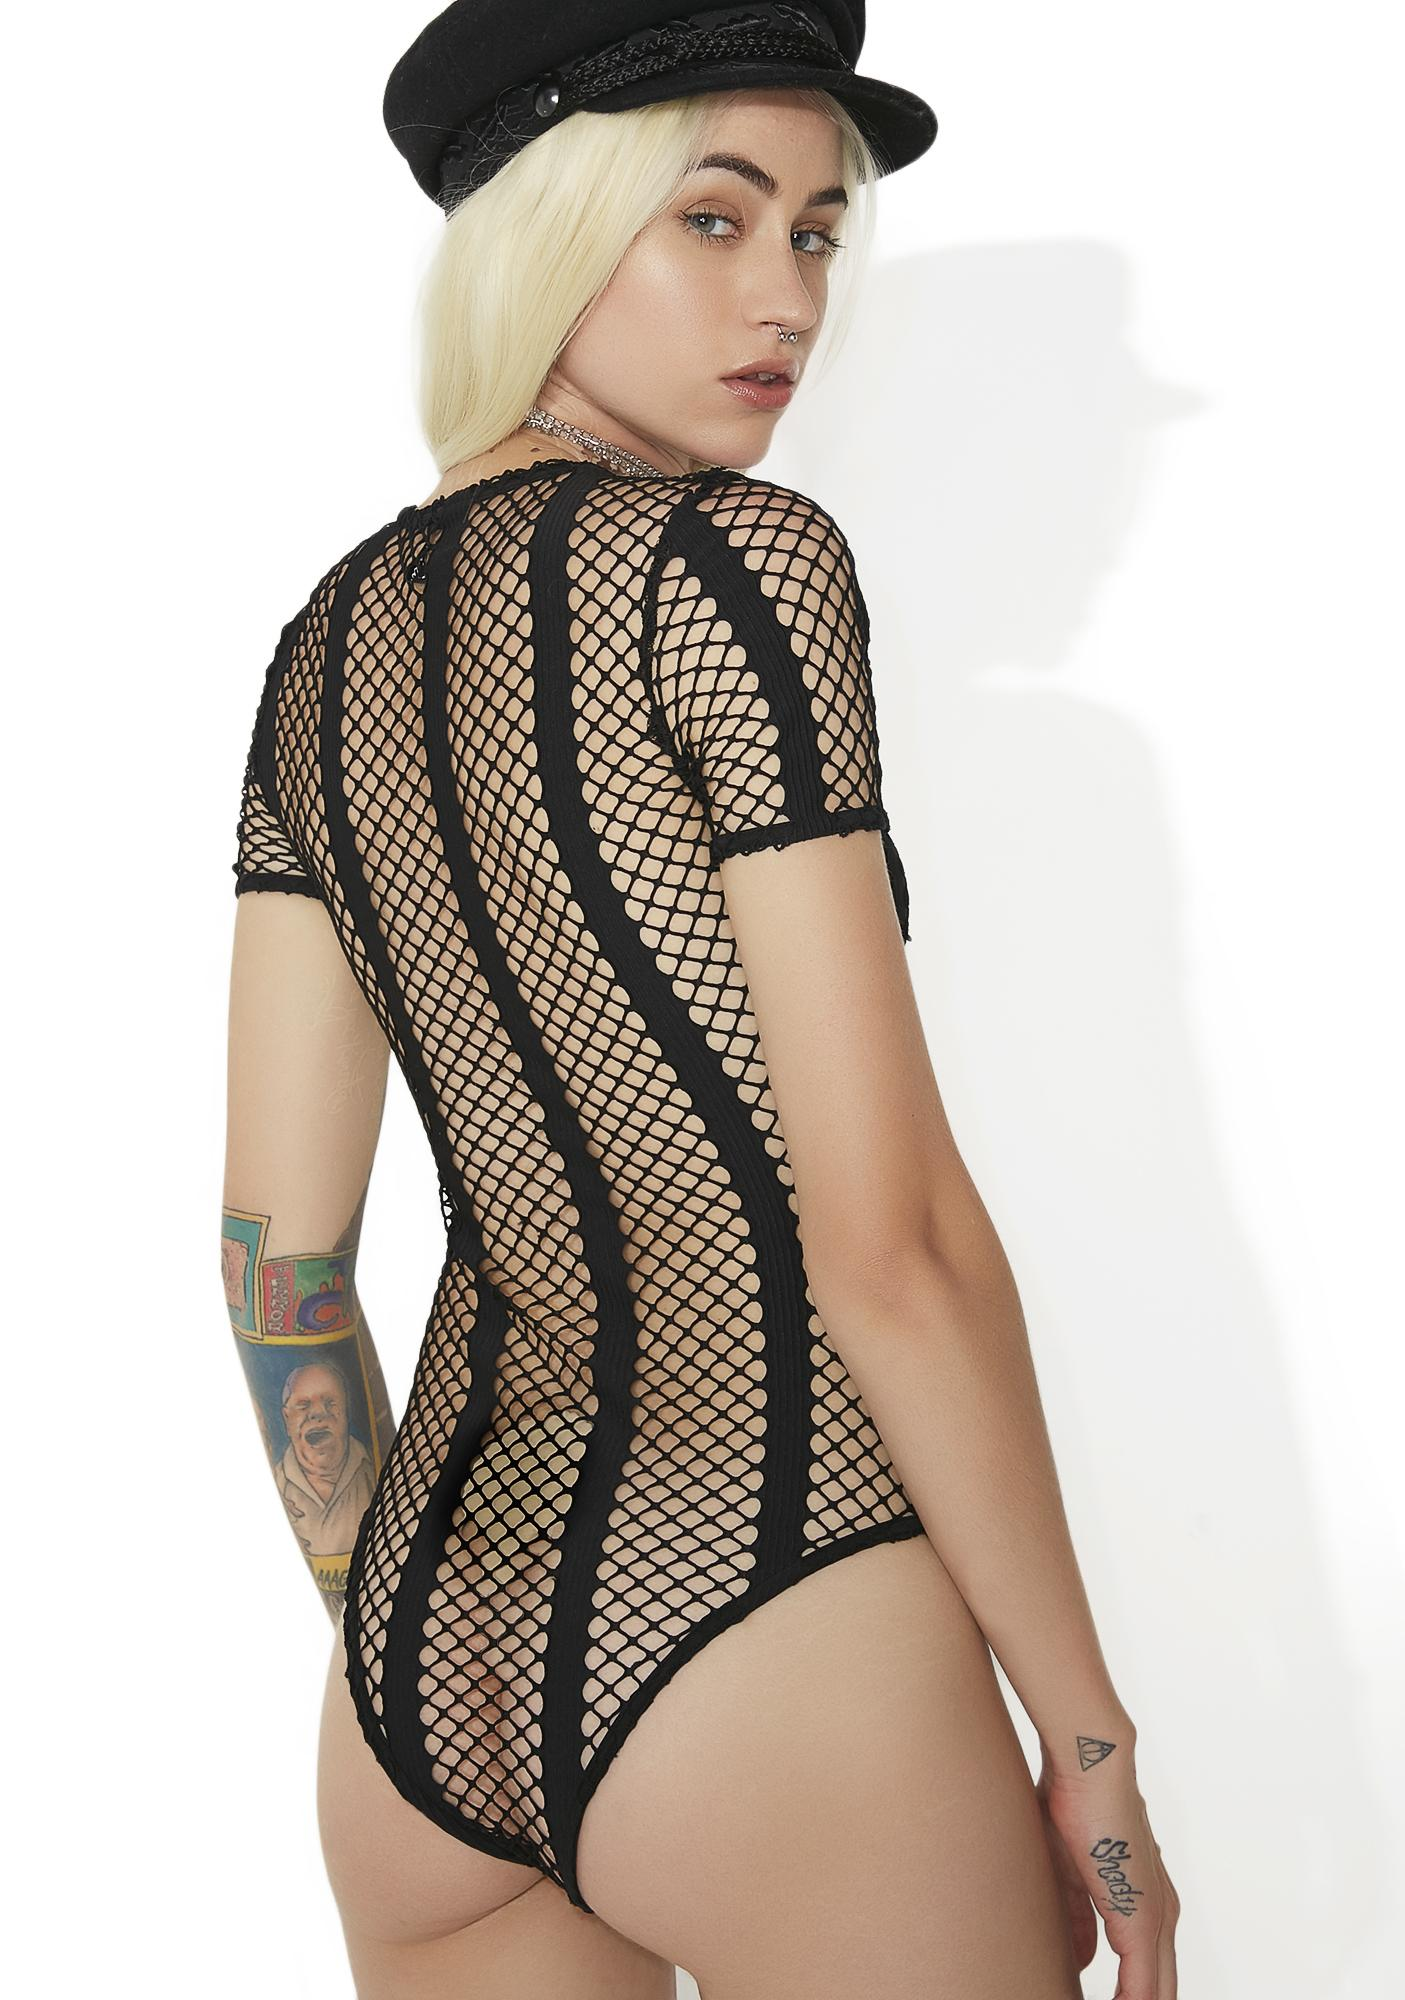 Out Of Line Fishnet Bodysuit